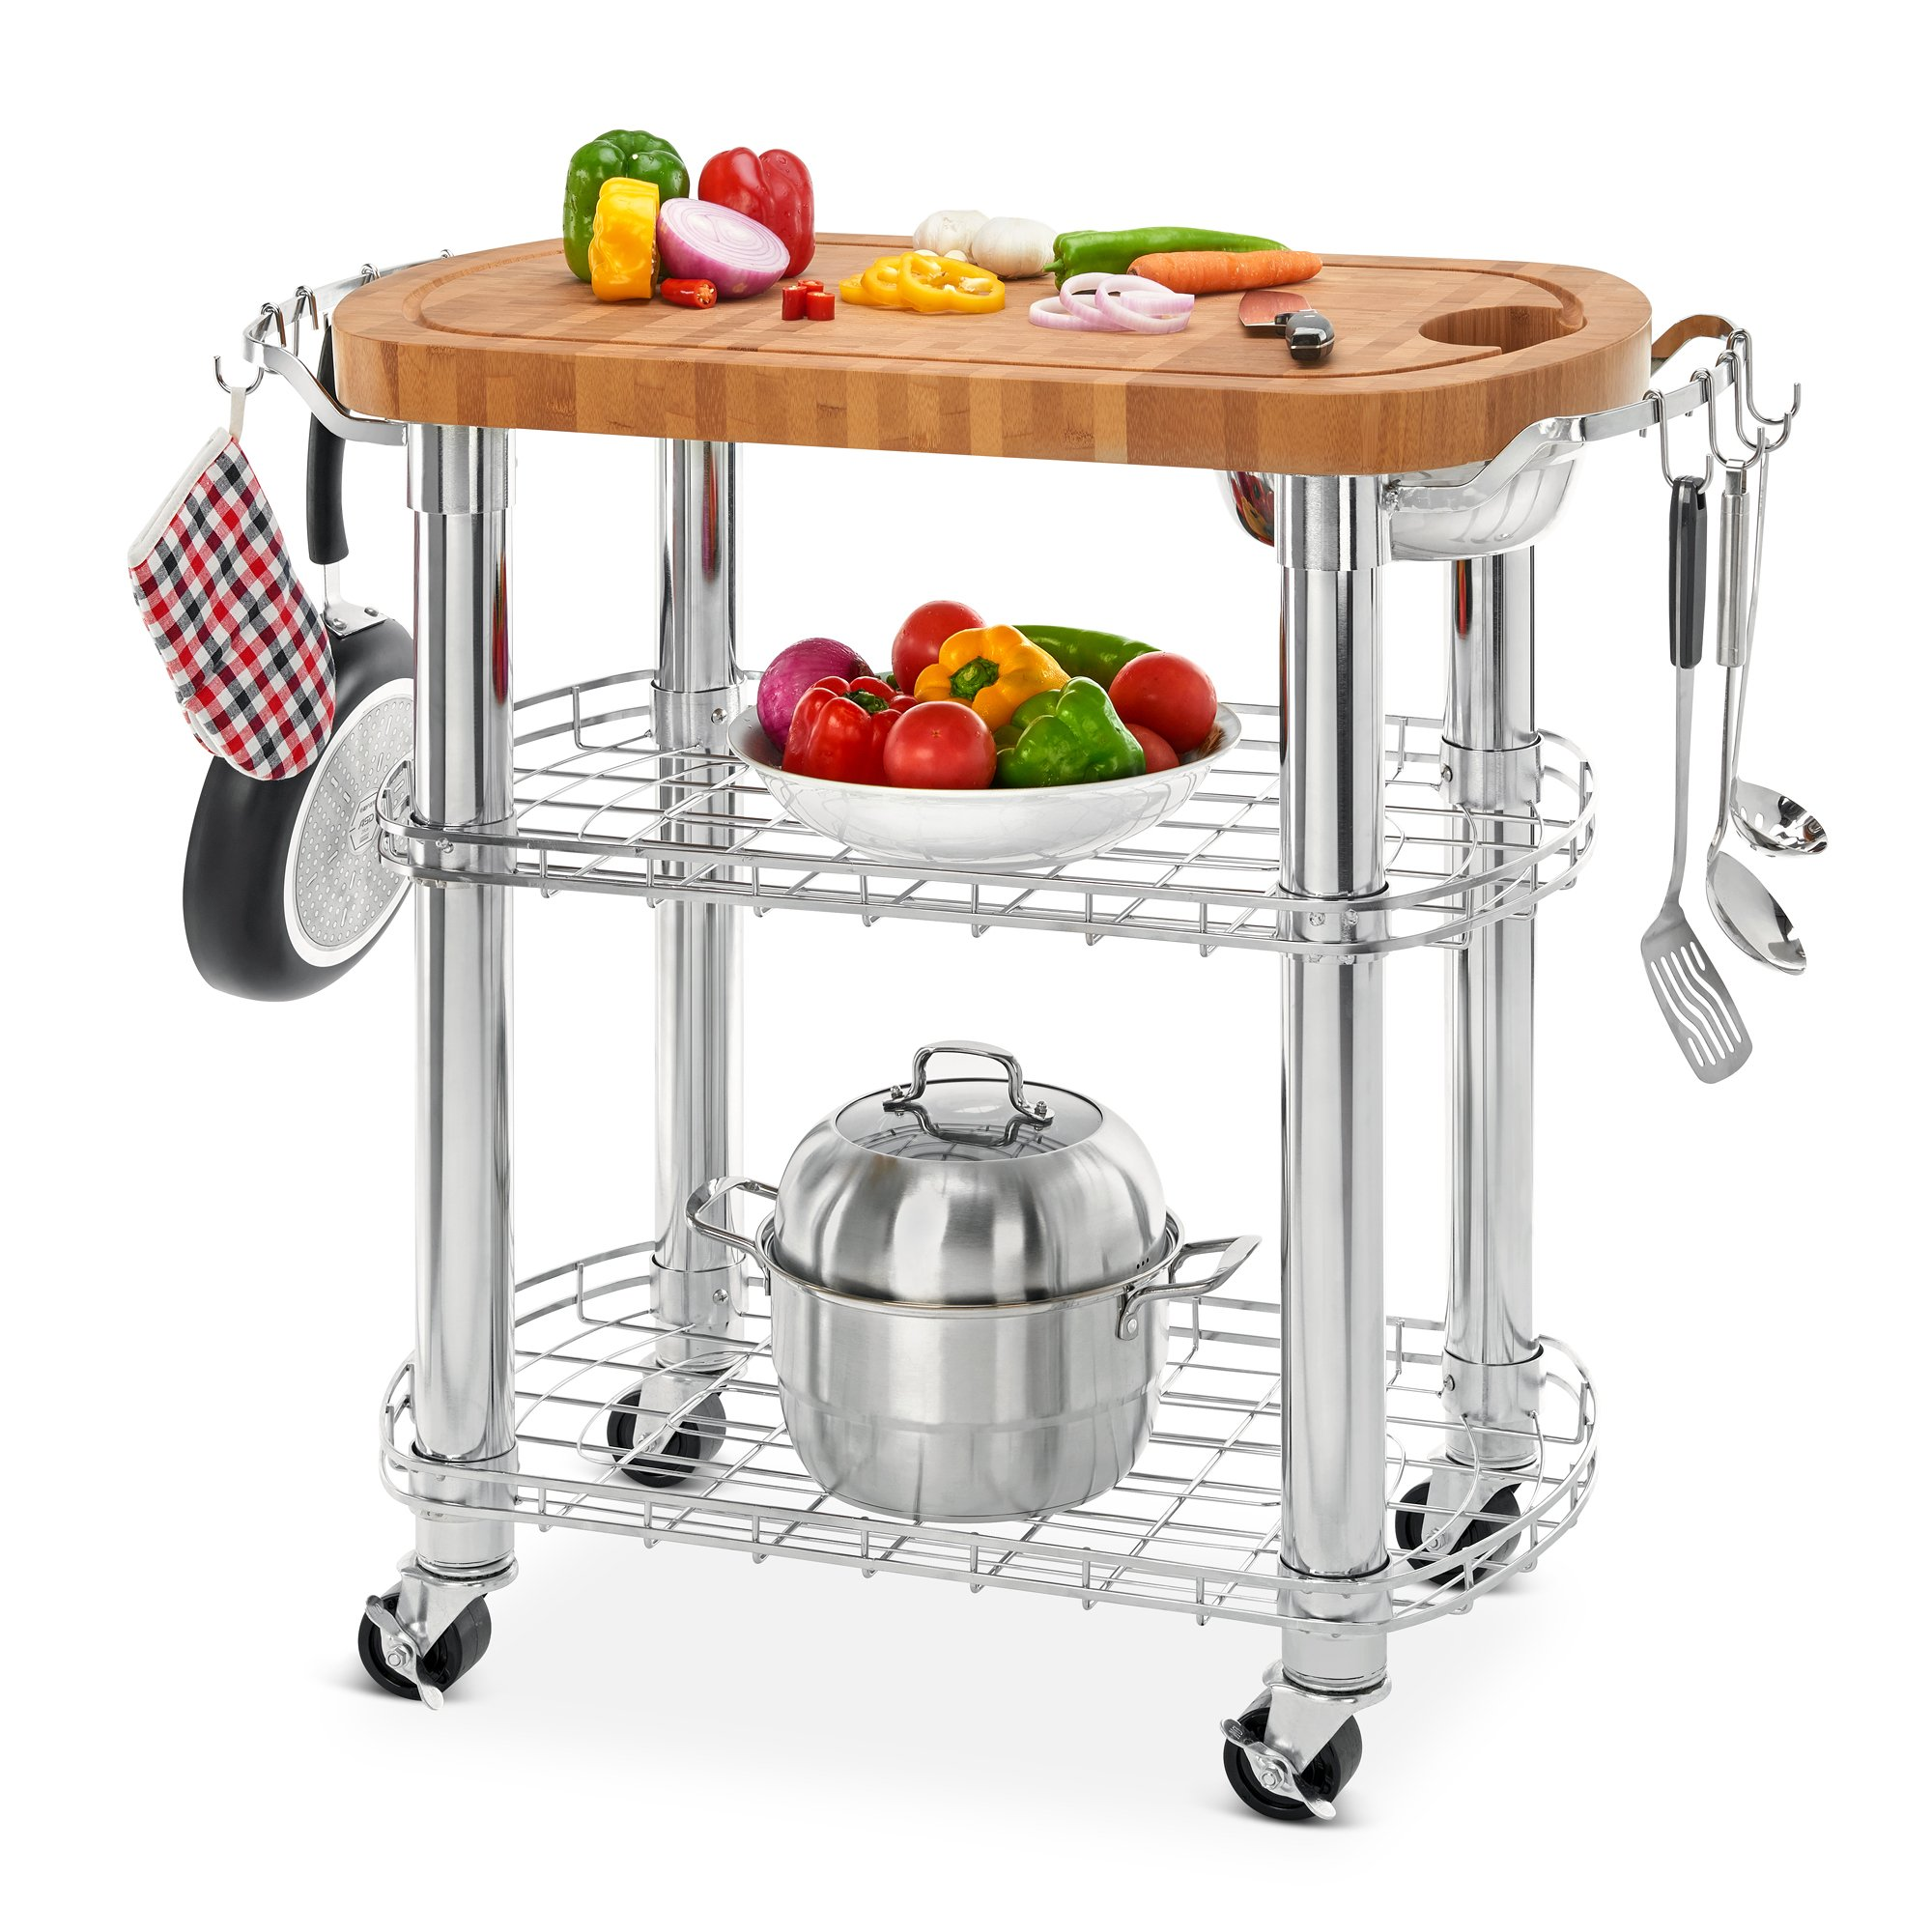 Seville Classics Rolling Oval Solid-Bamboo Butcher Block Top Kitchen Island Cart with Storage, 30'' W x 20'' D x 36'' H